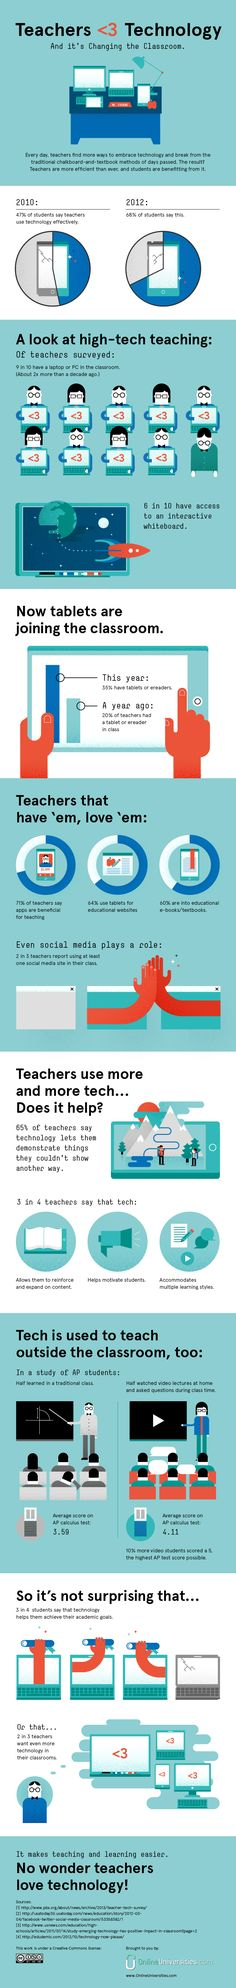 Teachers Love Technology | Once upon a time, the role of the teacher in the classroom conjured up images and ideas of blackboards, rulers, chalk, and pencils. But now, technology is becoming more and more integrated into modern school systems—not just as an added bonus, but as a necessity to how students learn and how teachers teach.